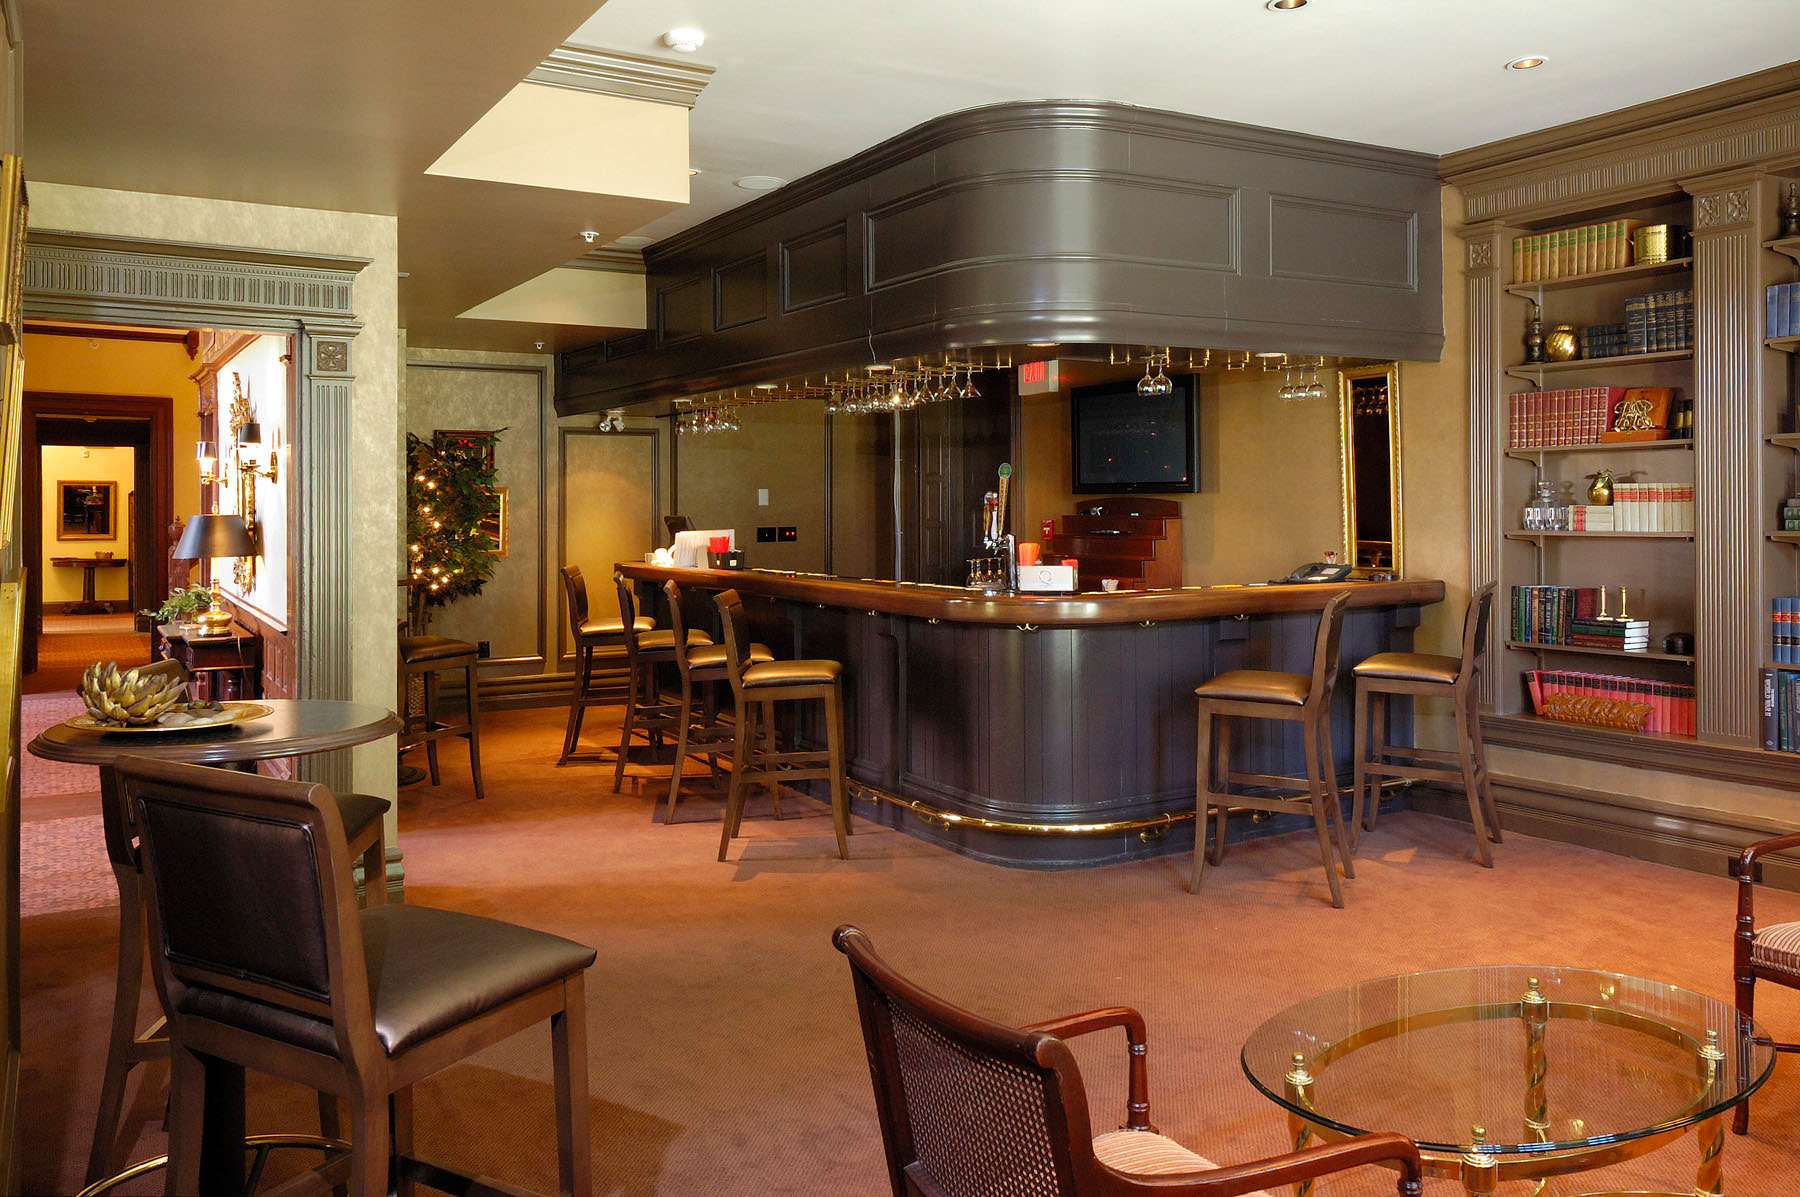 Original Casual Dining Room Converted To Bar